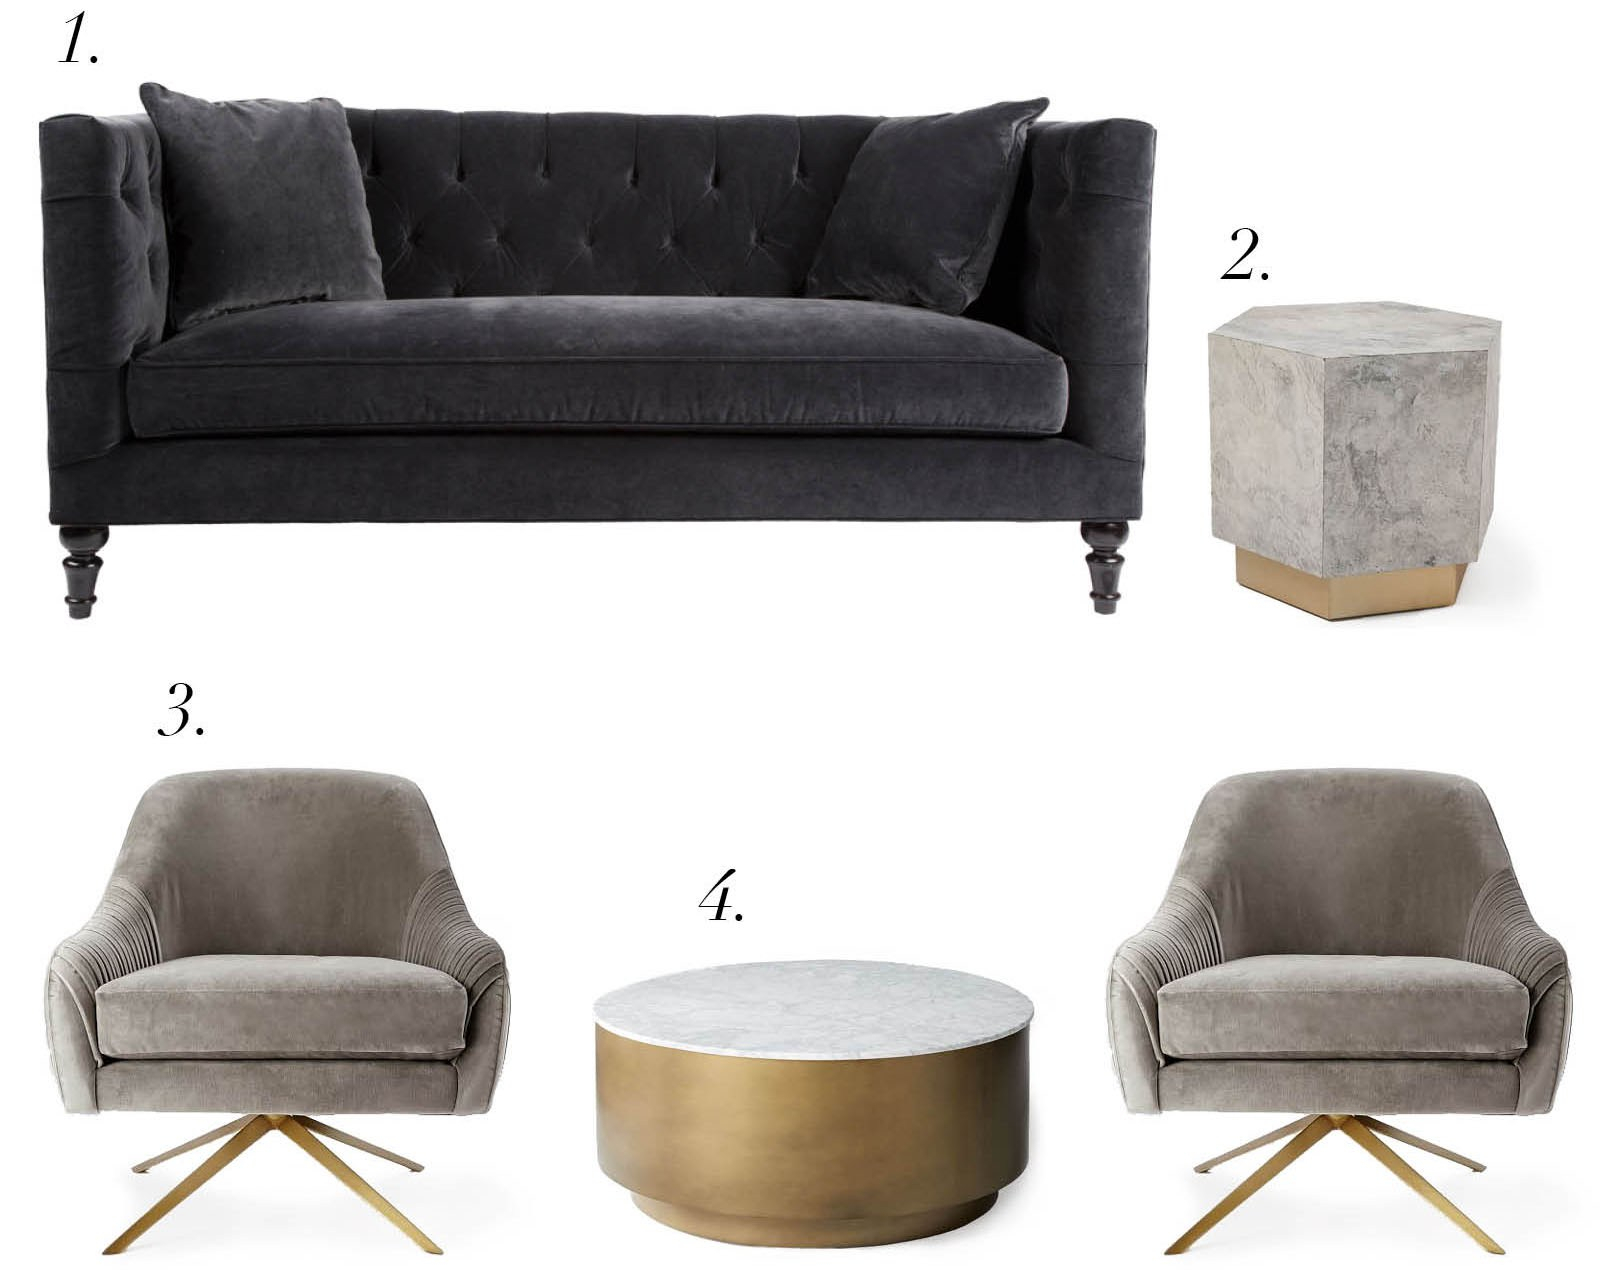 Furniture Shopping At West Elm + Rejuvenation – House Of Brinson With Regard To Elm Sofa Chairs (Image 18 of 25)